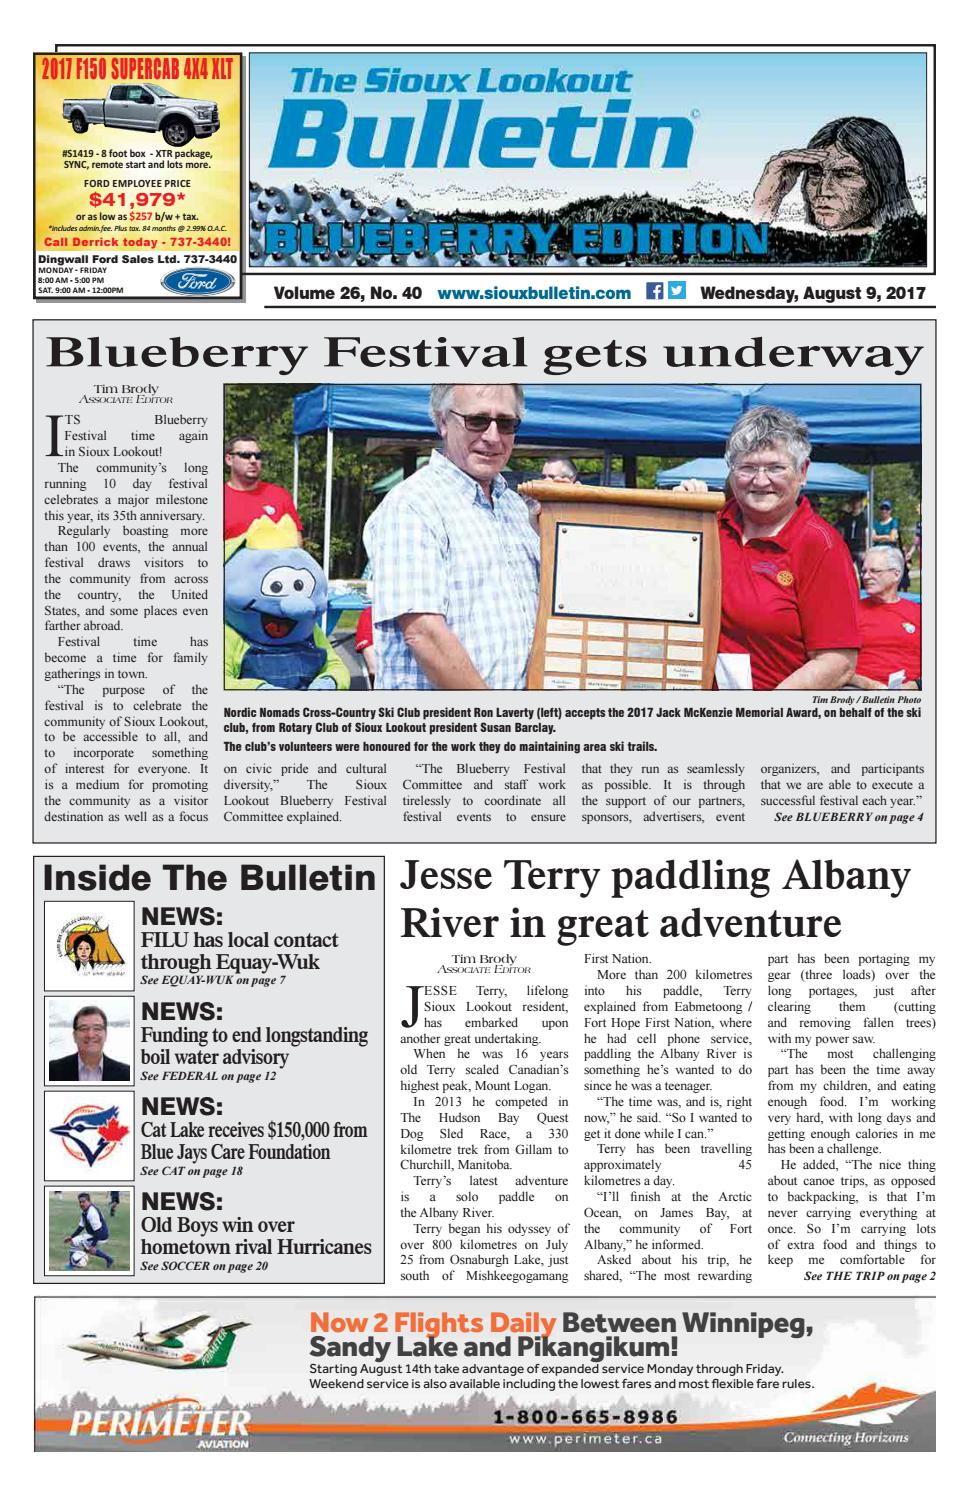 The Sioux Lookout Bulletin - Vol  26, No  40, August 9, 2017